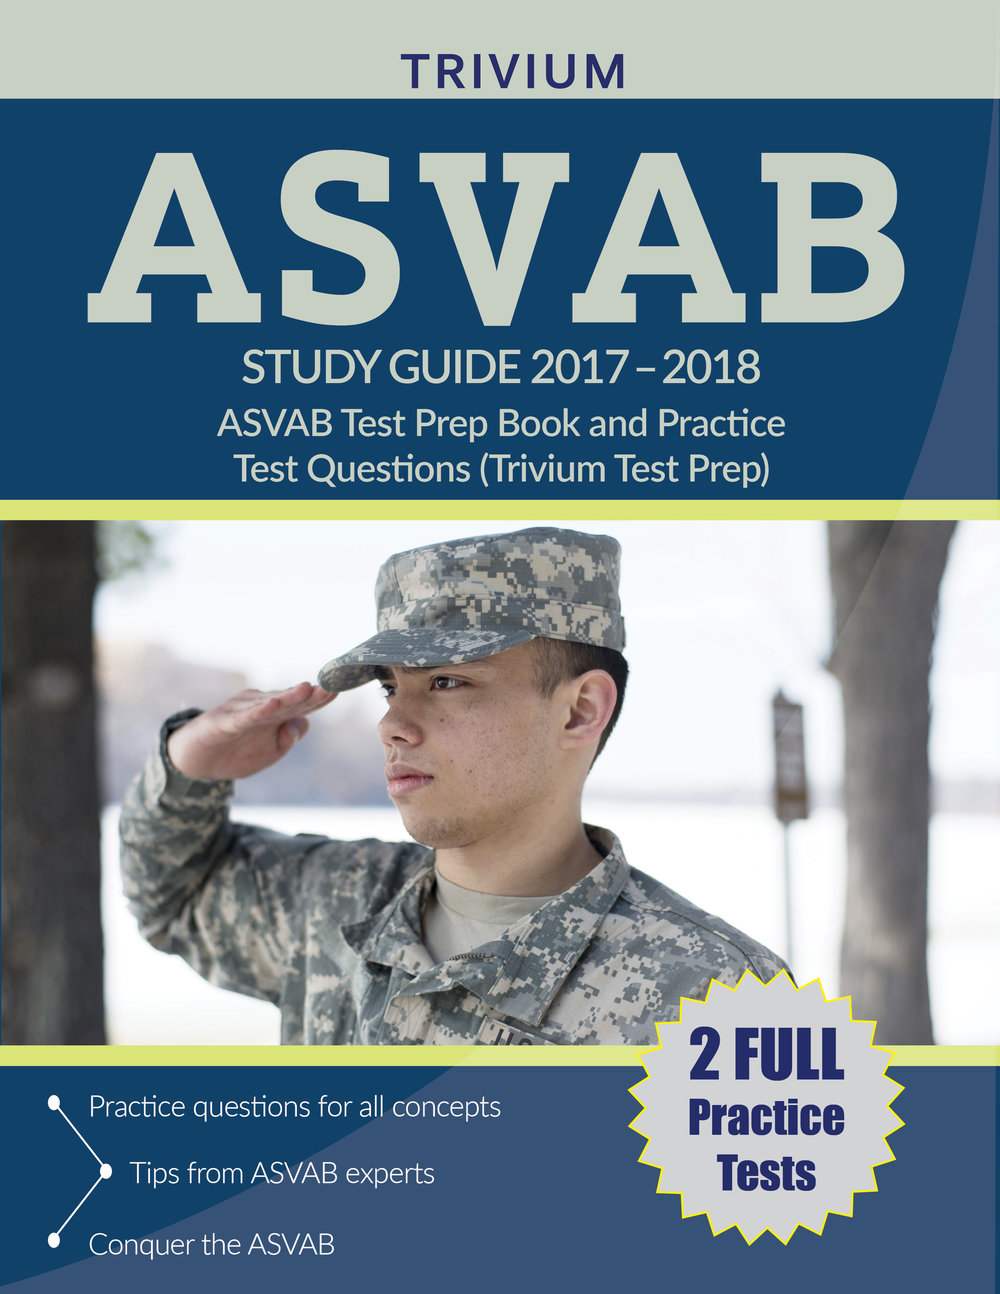 ASVAB Study Guide Test Prep Book and Practice Test Questions